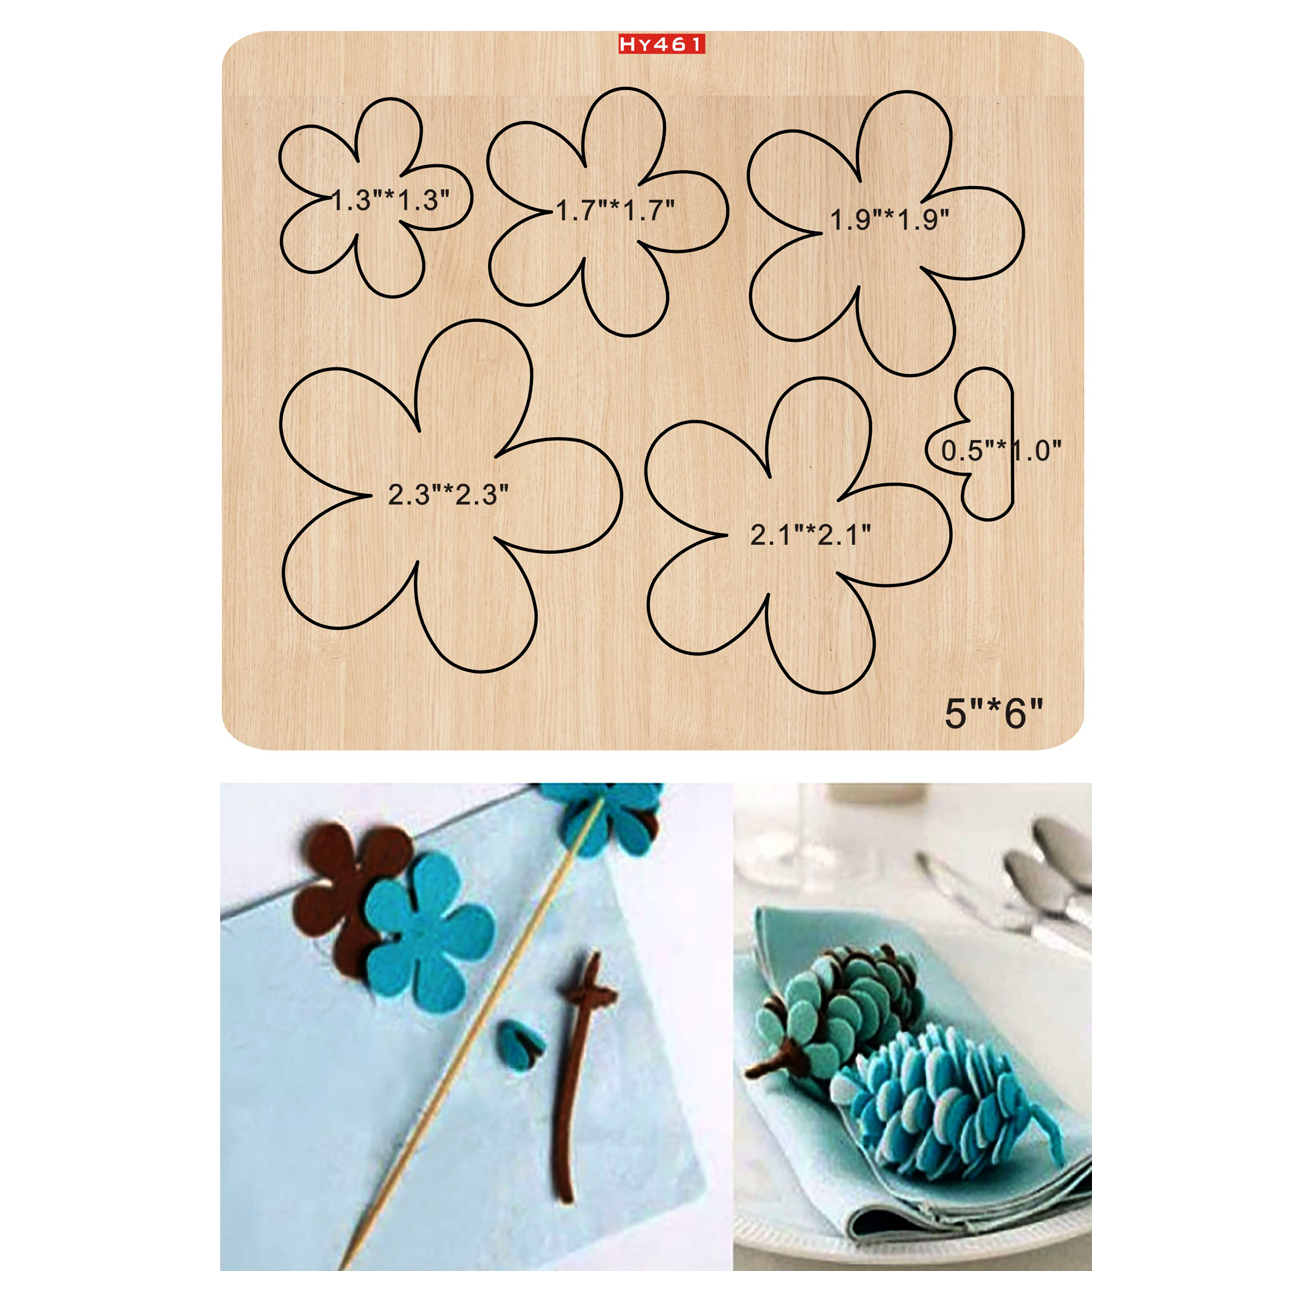 Flower Cutting Dies 2019 New Die Cut &wooden Dies Suitable For Common Die Cutting Machines On The Market